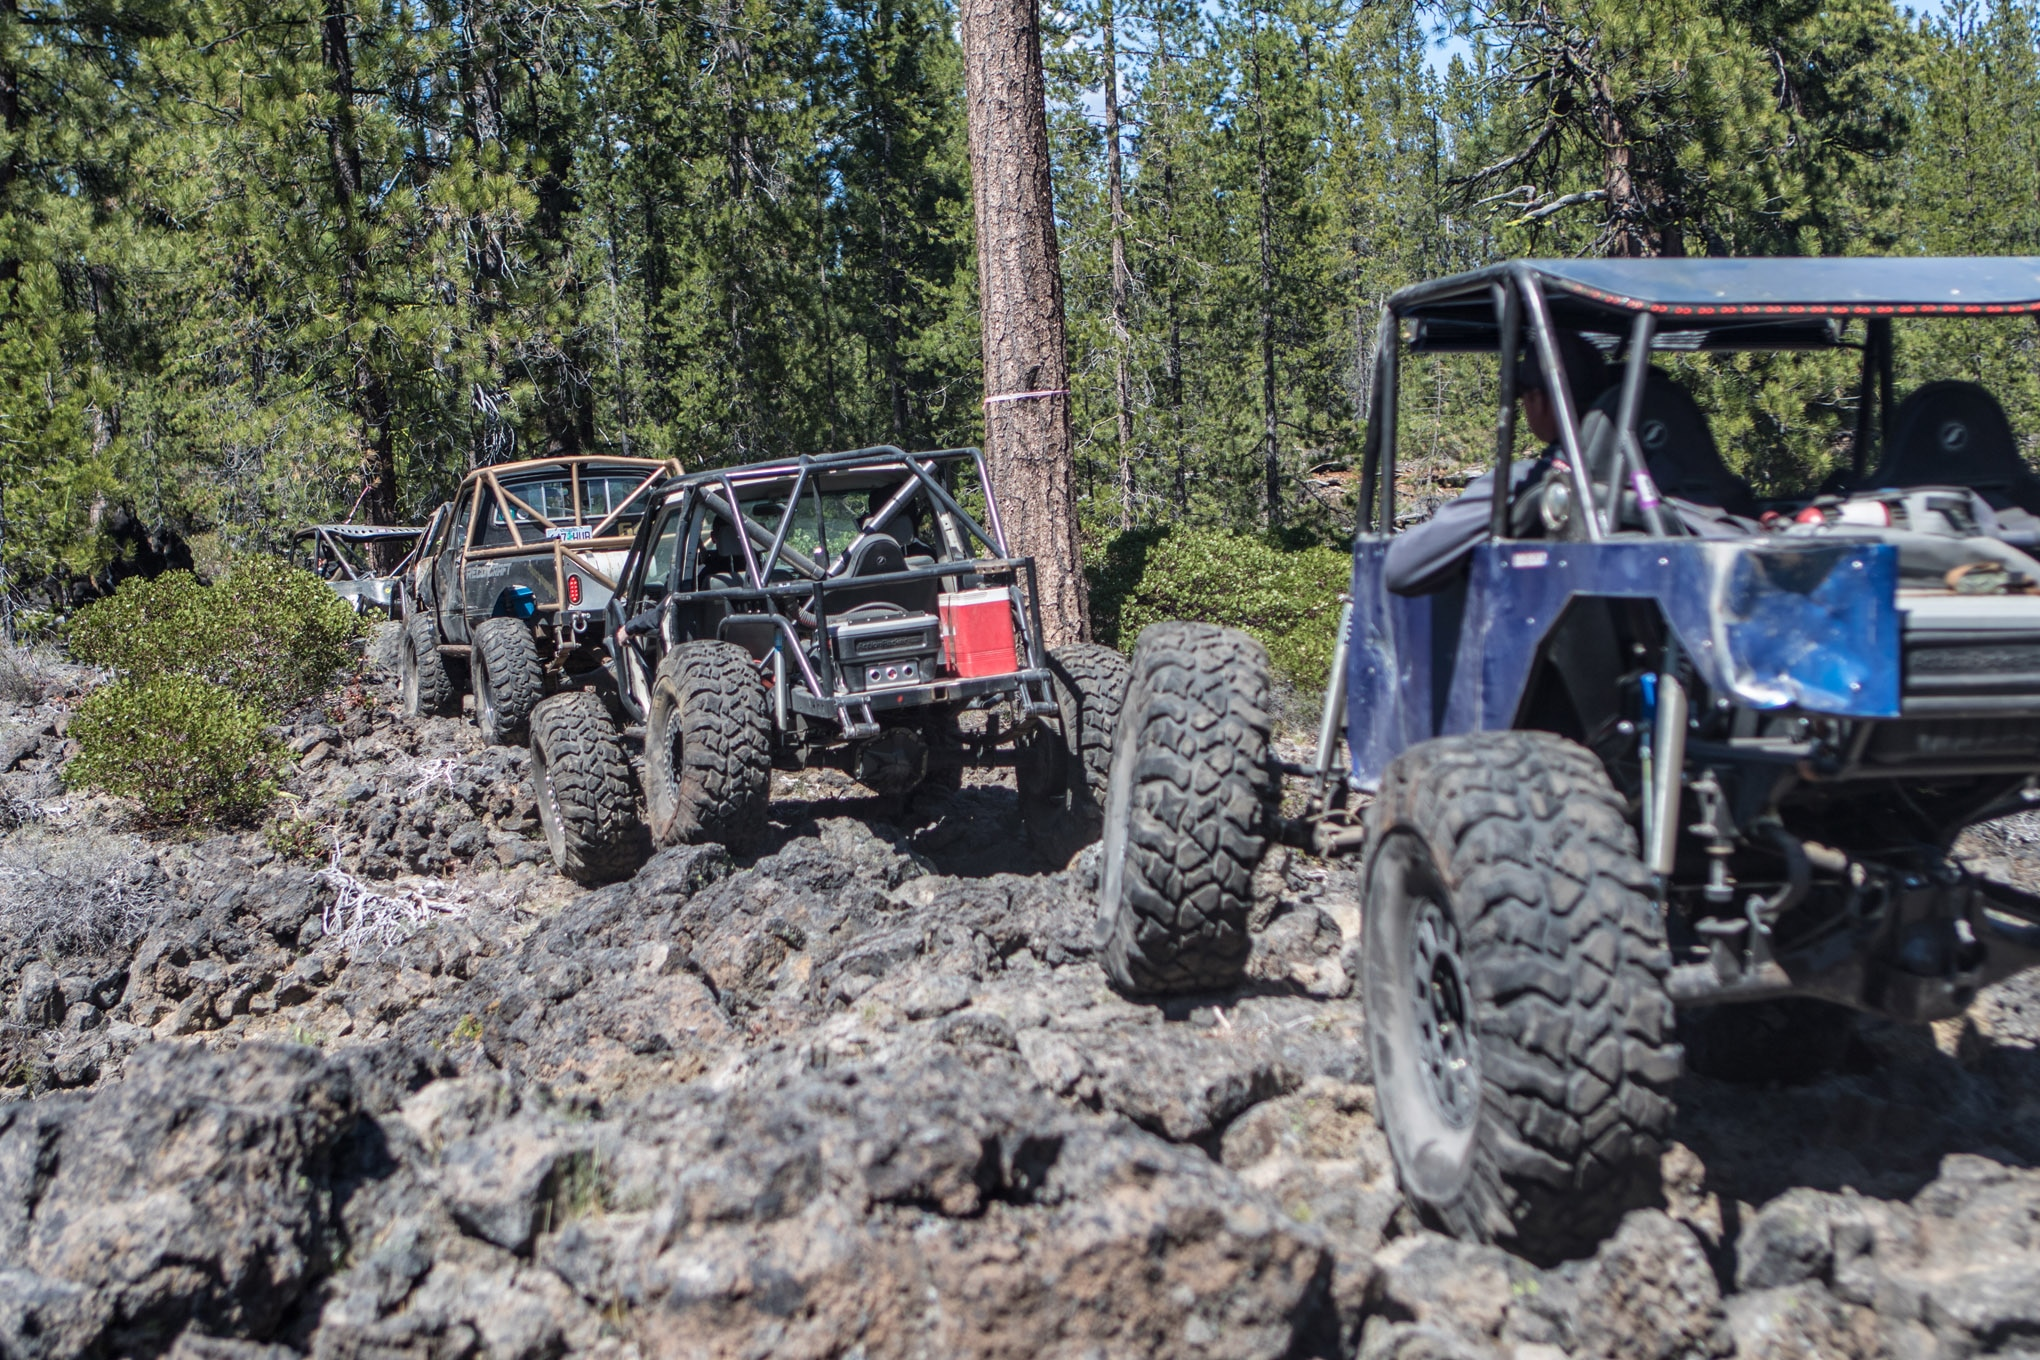 The Rim Butte Trail has numerous legs that cover 18 miles of trail. The trail is marked with flagging ribbon of different colors to denote the difficulty of the given route. Many obstacles are optional and can be bypassed, allowing vehicles and drivers of varying capabilities to spend the day together on the same trail.